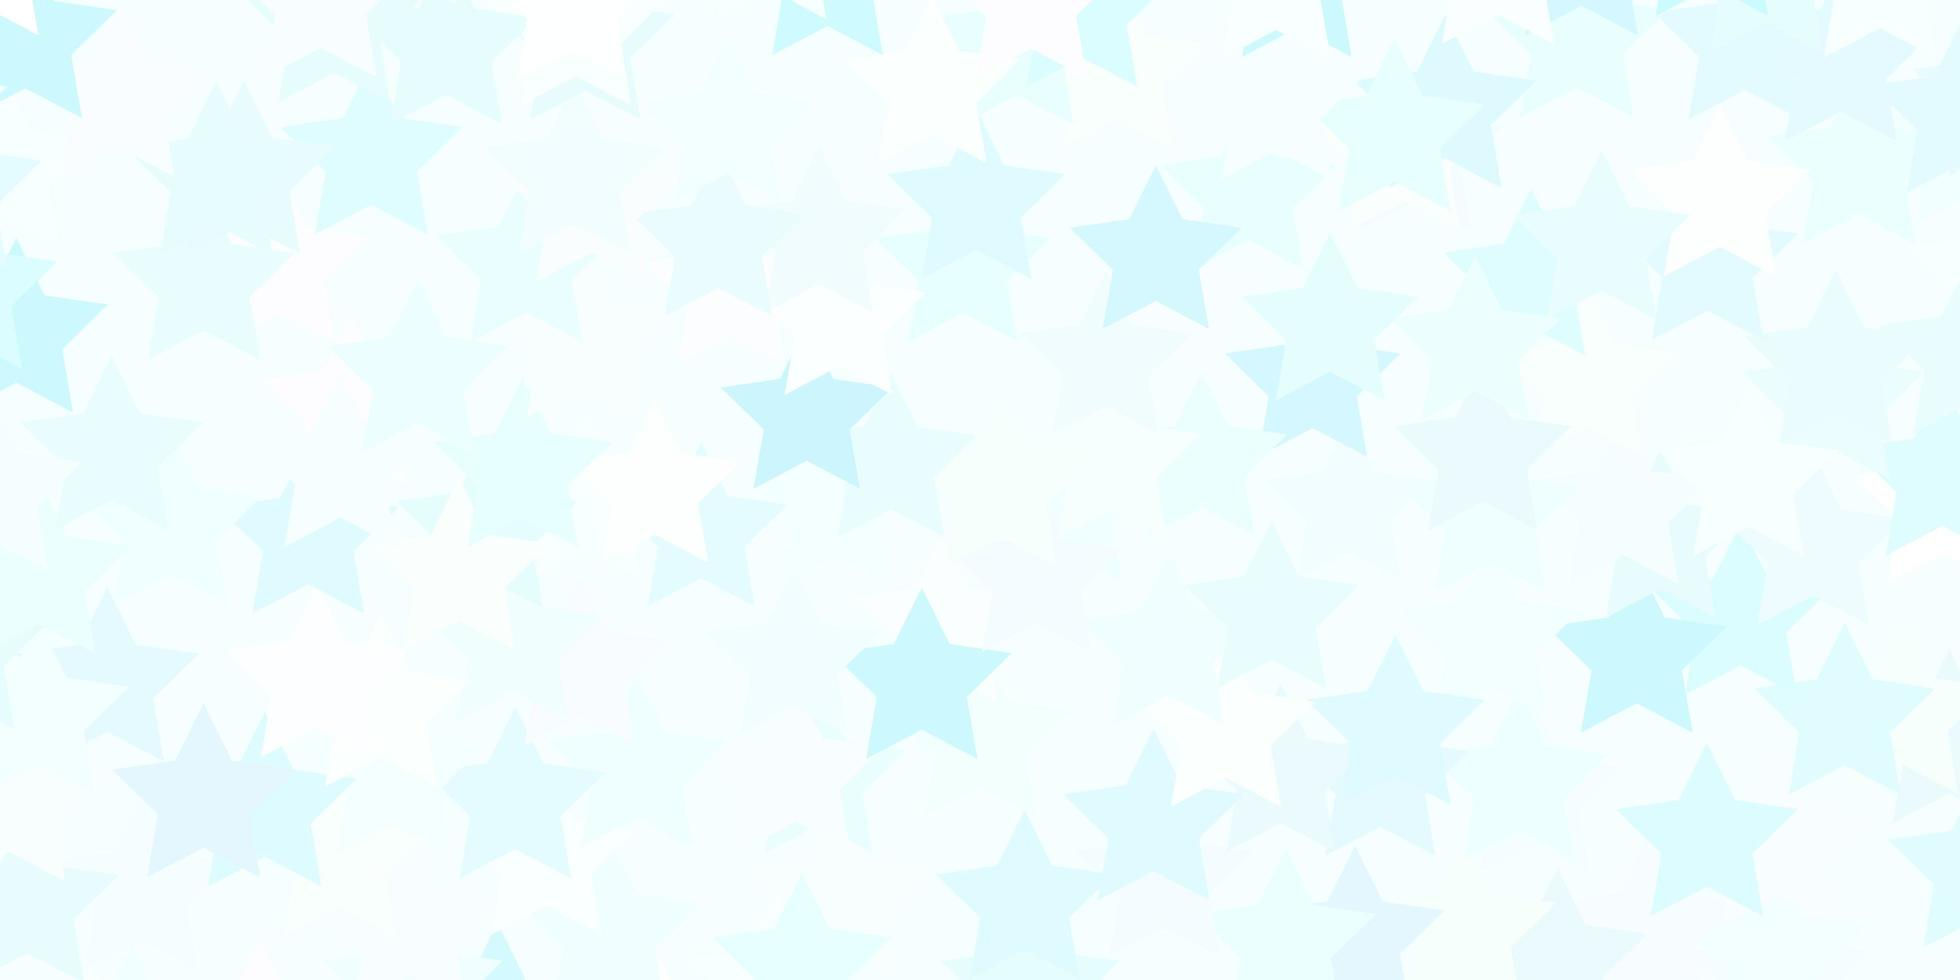 Light BLUE vector layout with bright stars.